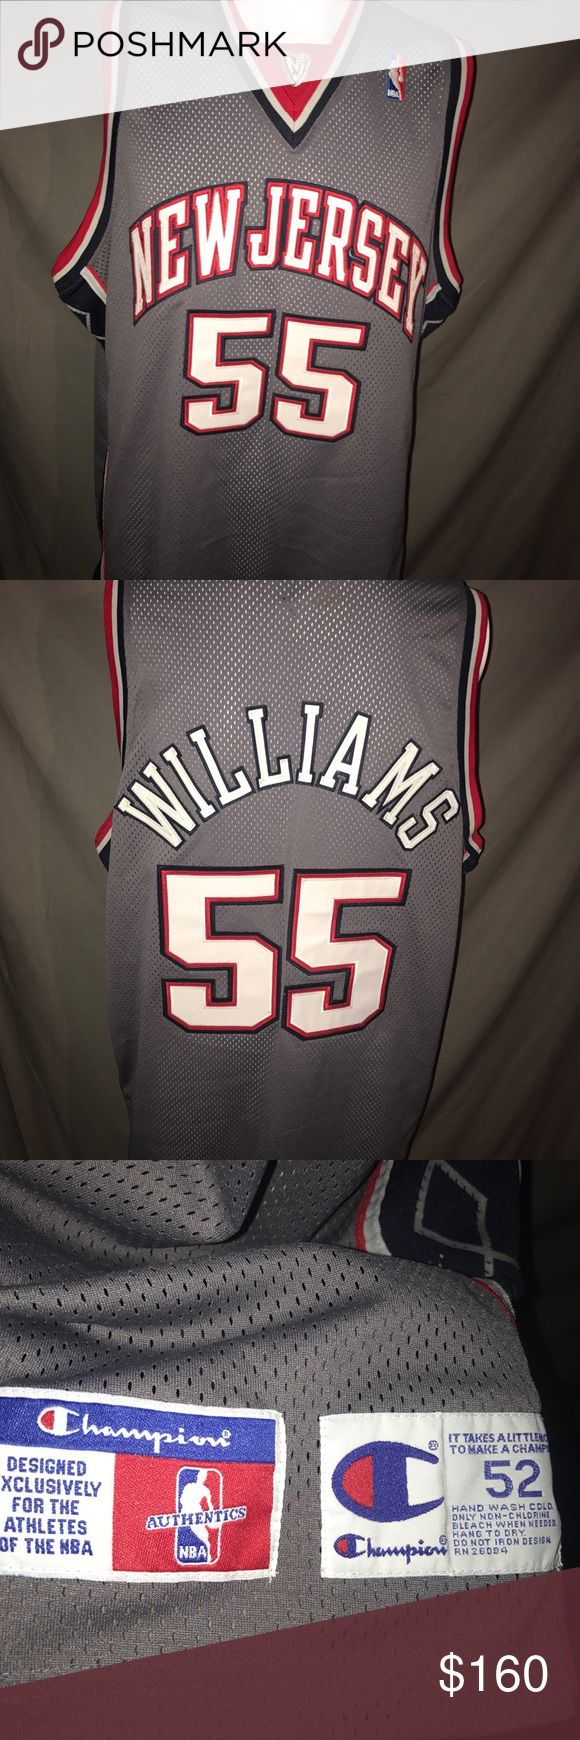 Nets Authentic Jayson Williams Jersey Men's New Jersey Nets Authentic Jayson Williams Champion Jersey. Size XXL. 100% Authentic. MINT condition. No flaws at all!!! Everything on jersey is stitched, great quality. Fits true to size. Champion Shirts